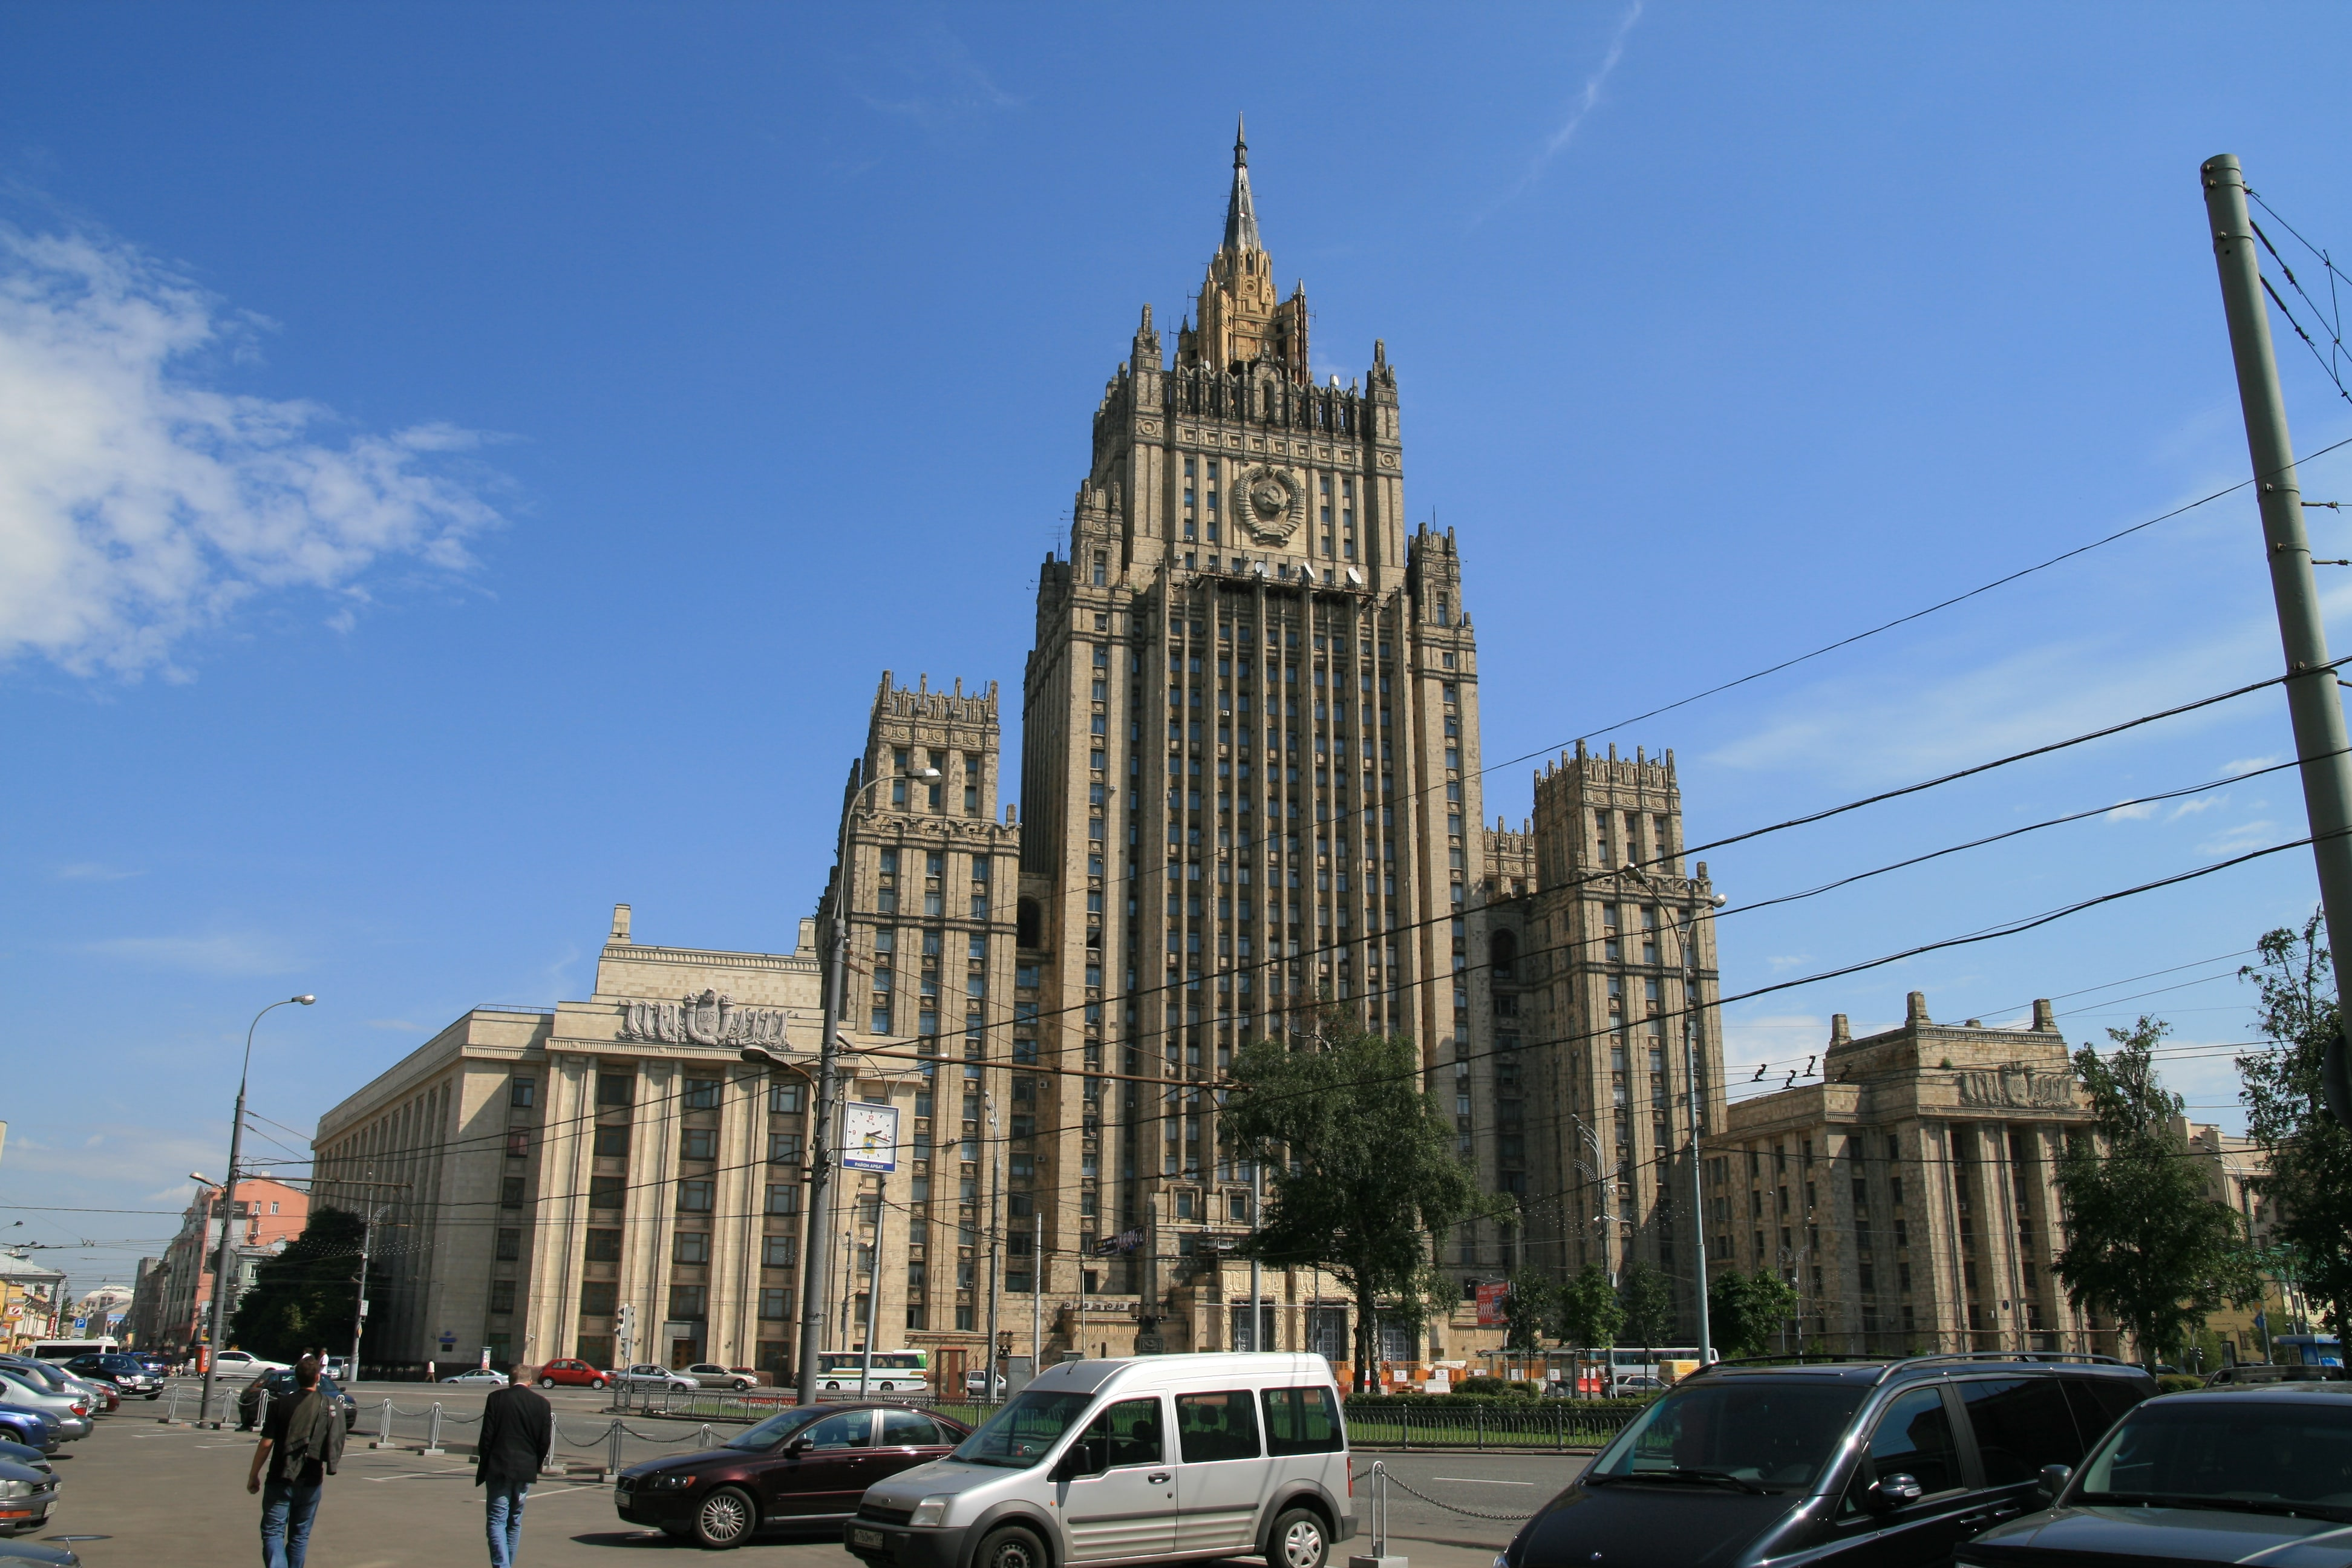 No one actually hacked the Russian Foreign Ministry ...